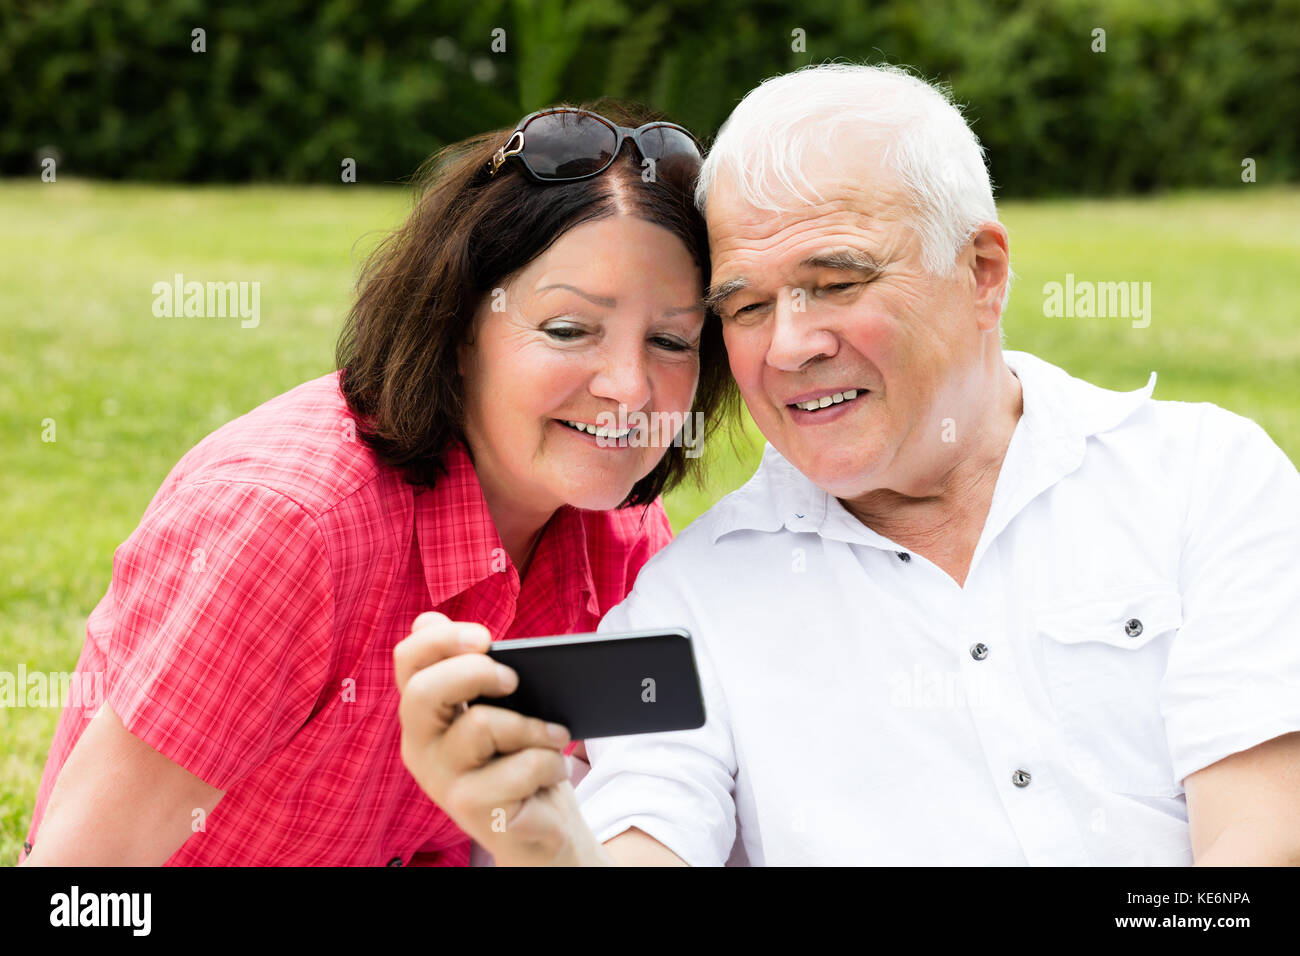 Happy Senior Couple Taking Selfie With Mobile Phone - Stock Image